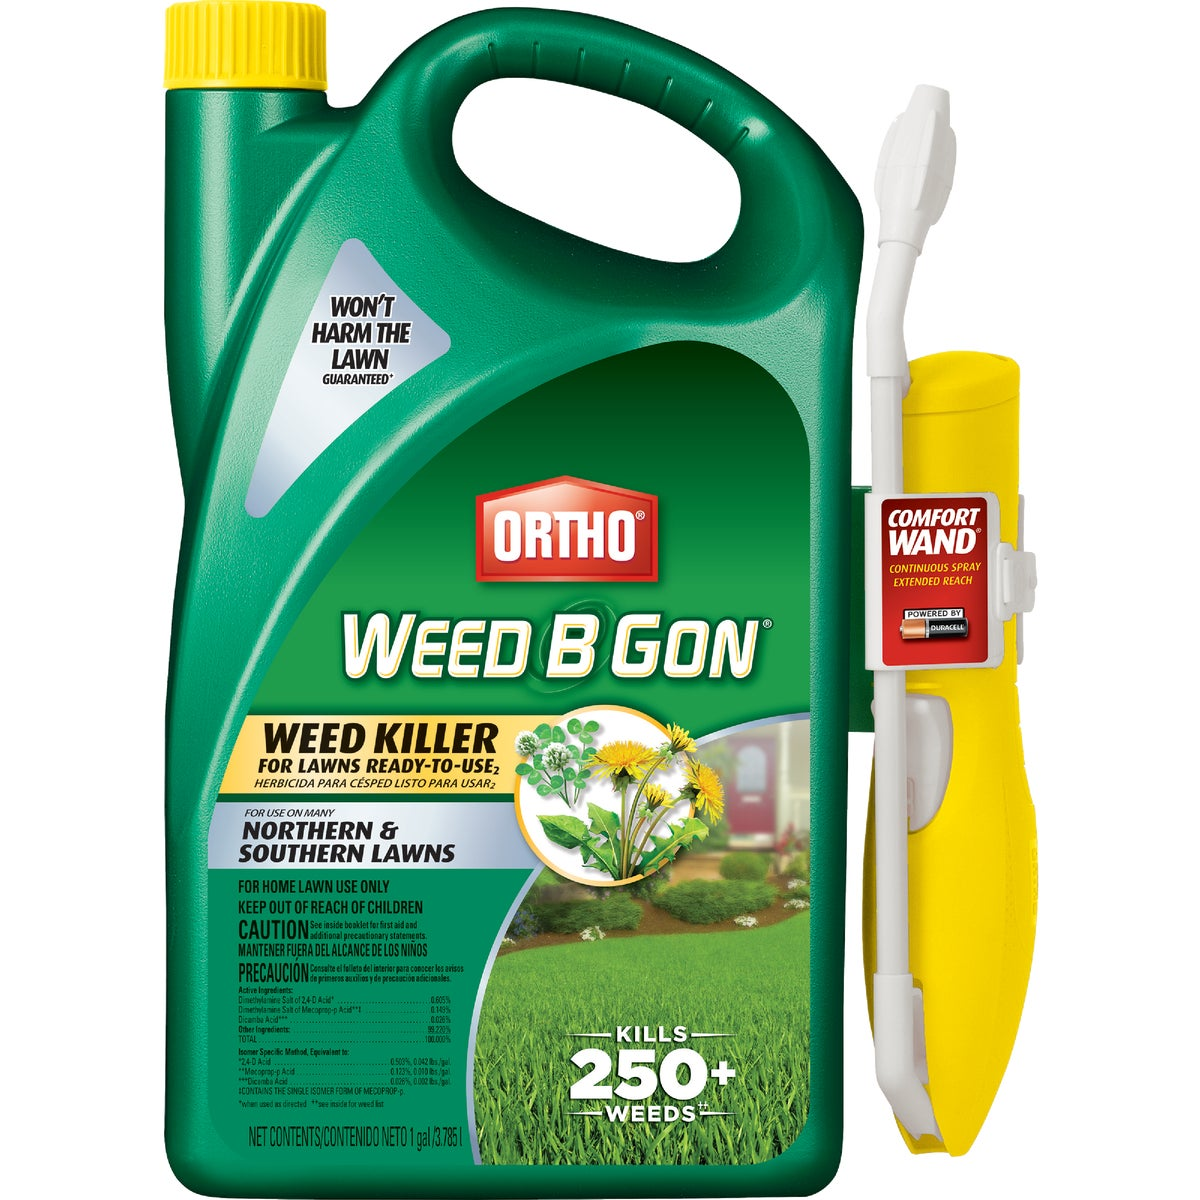 1.33GAL RTU WEED B GON - 0404310 by Scotts Company